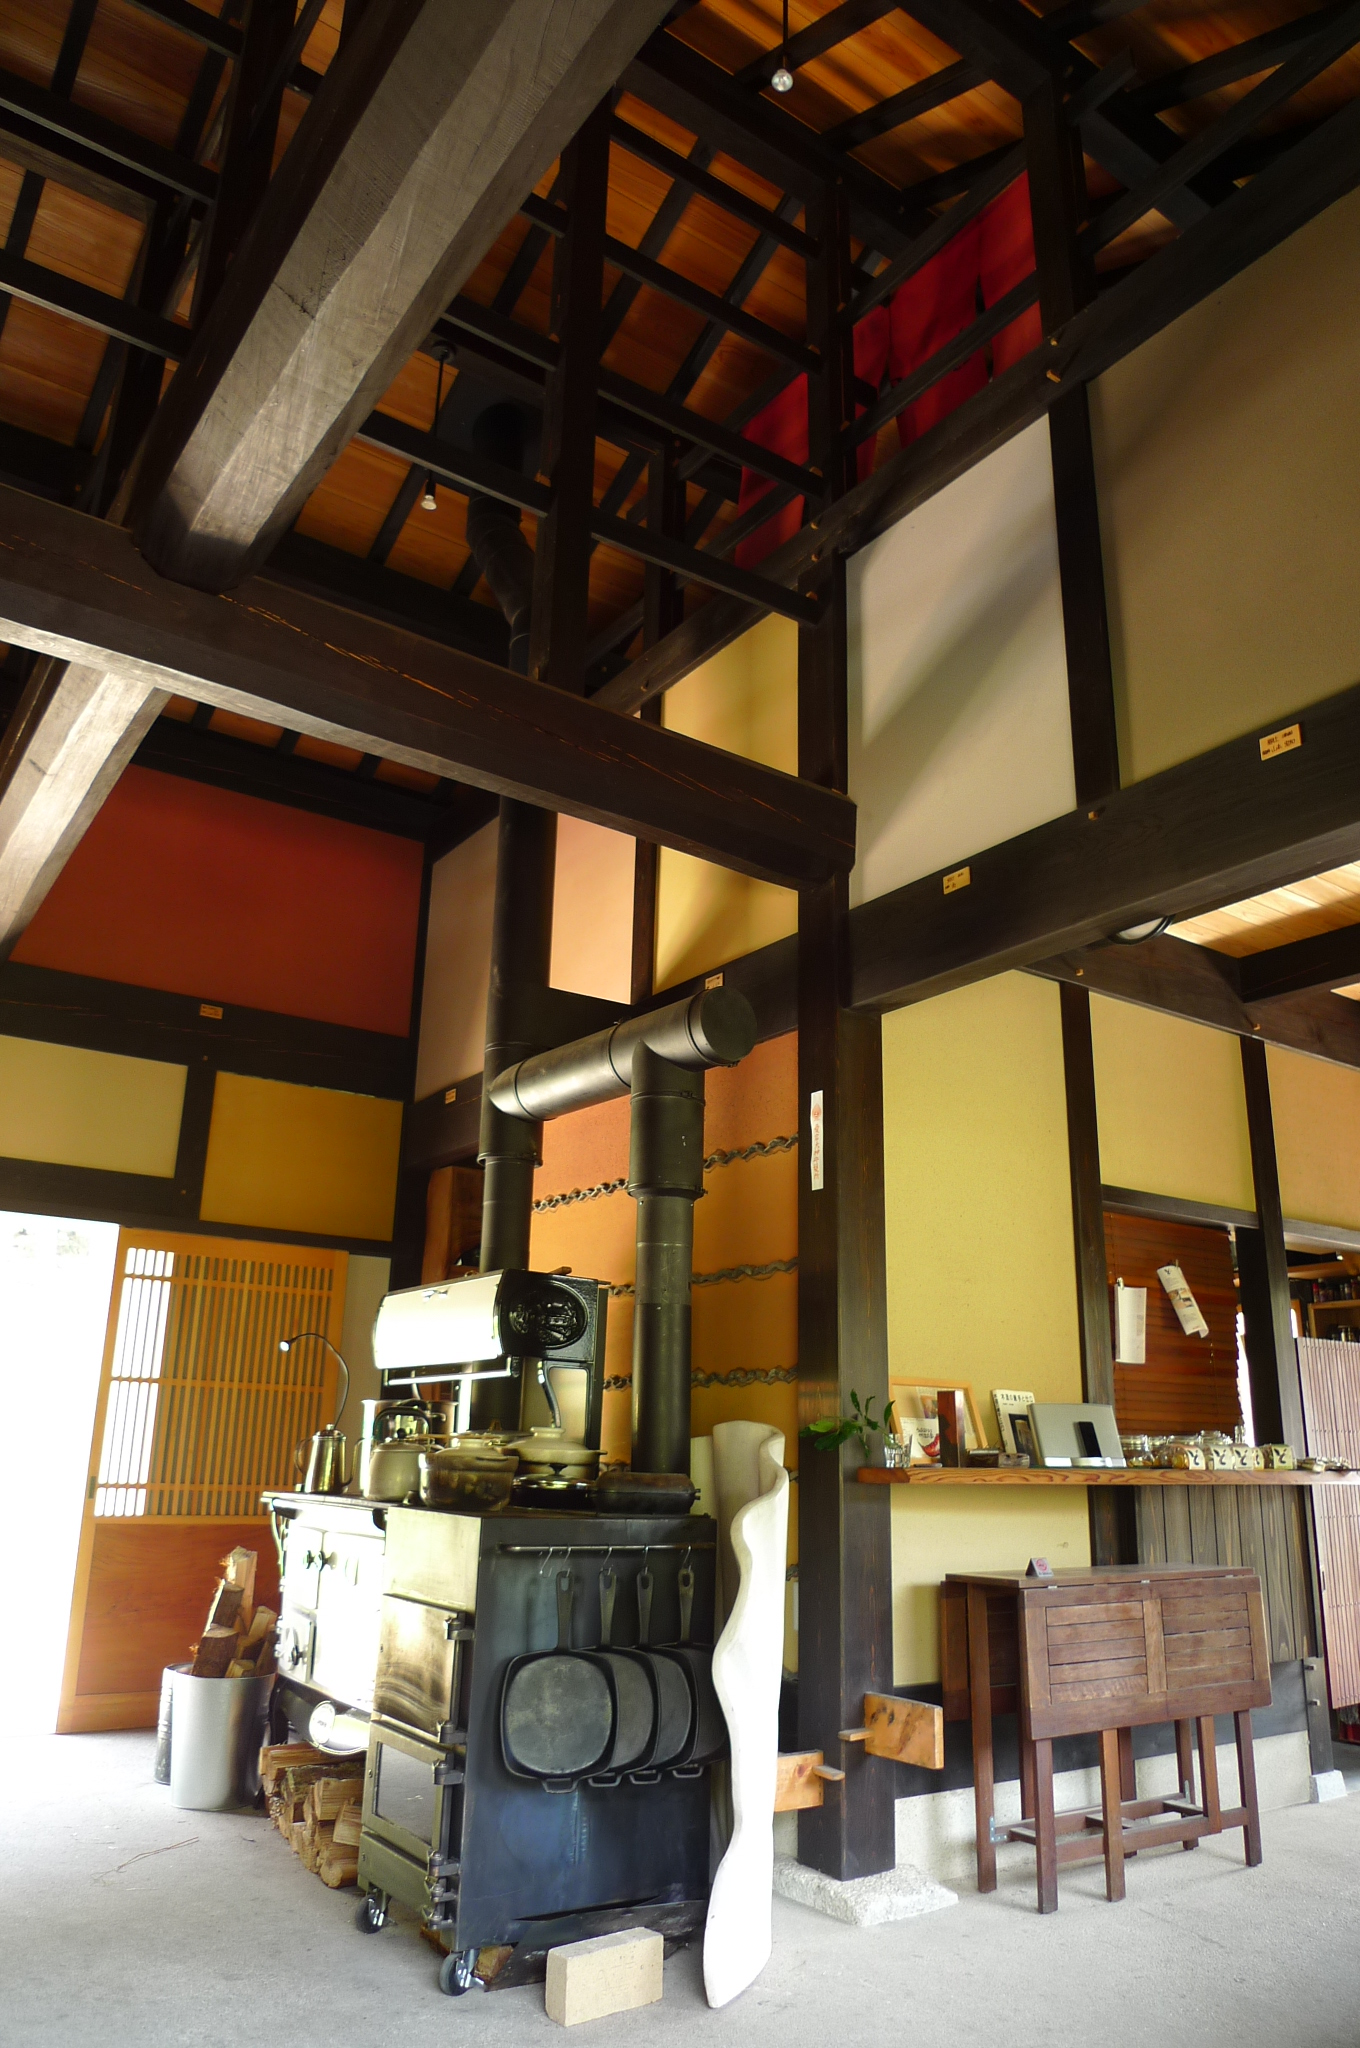 A beautiful timber frame structure with traditional bamboo lattice and earthen plaster walls